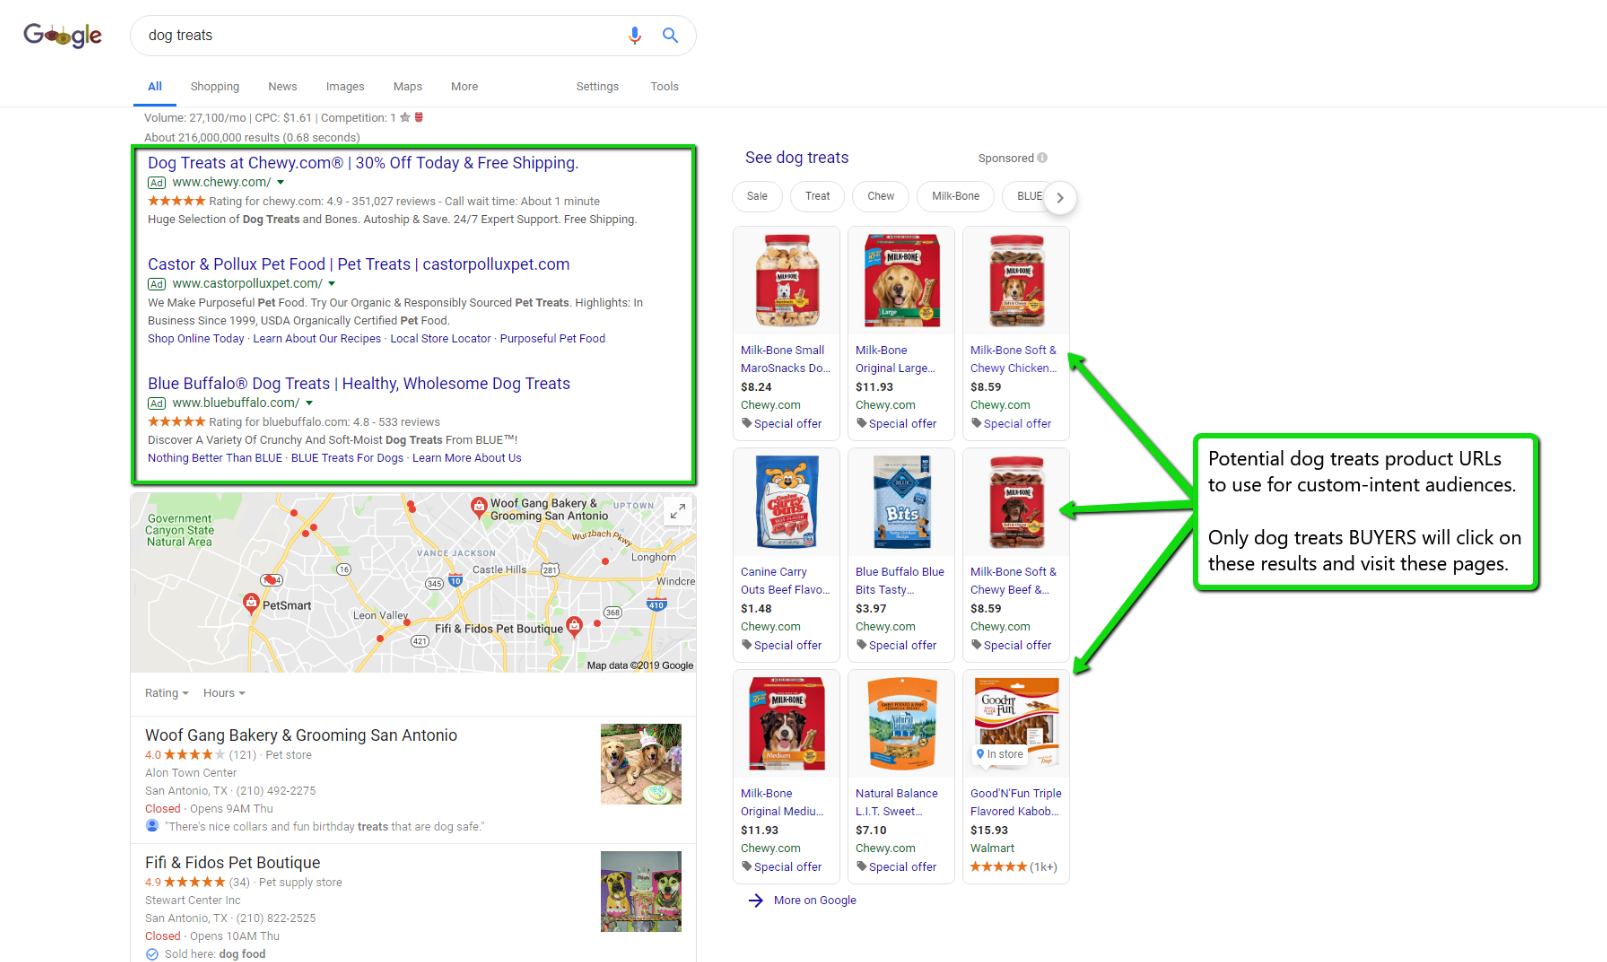 The Ultimate Guide to Google's Custom Intent Audiences. Image 5